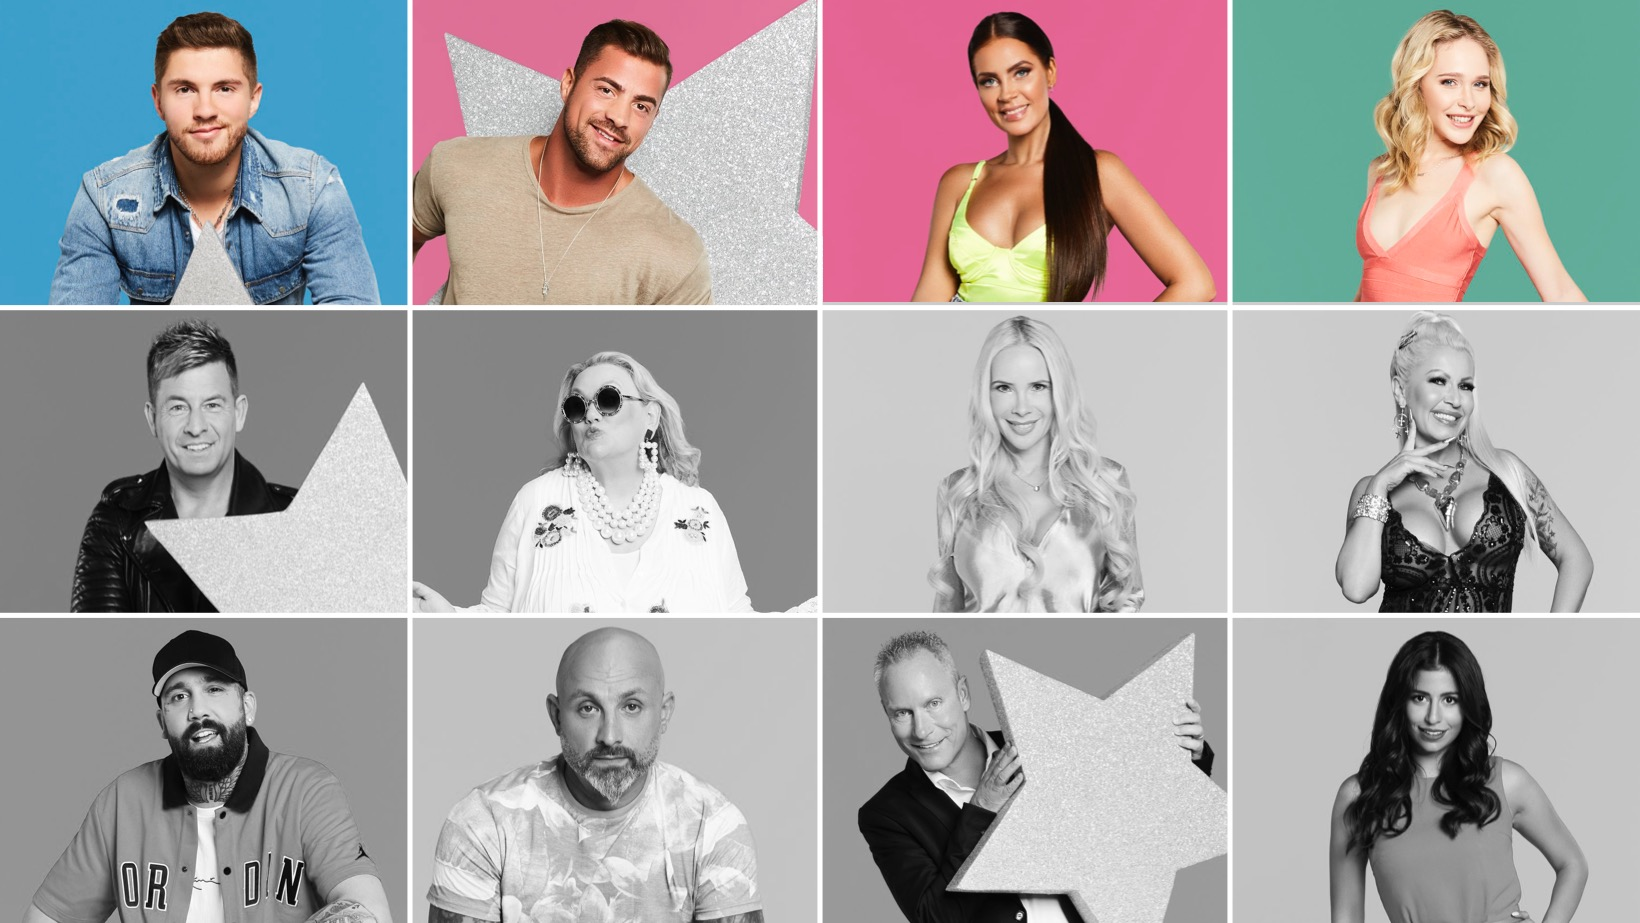 Promi Big Brother 2019 Finale Kandidaten